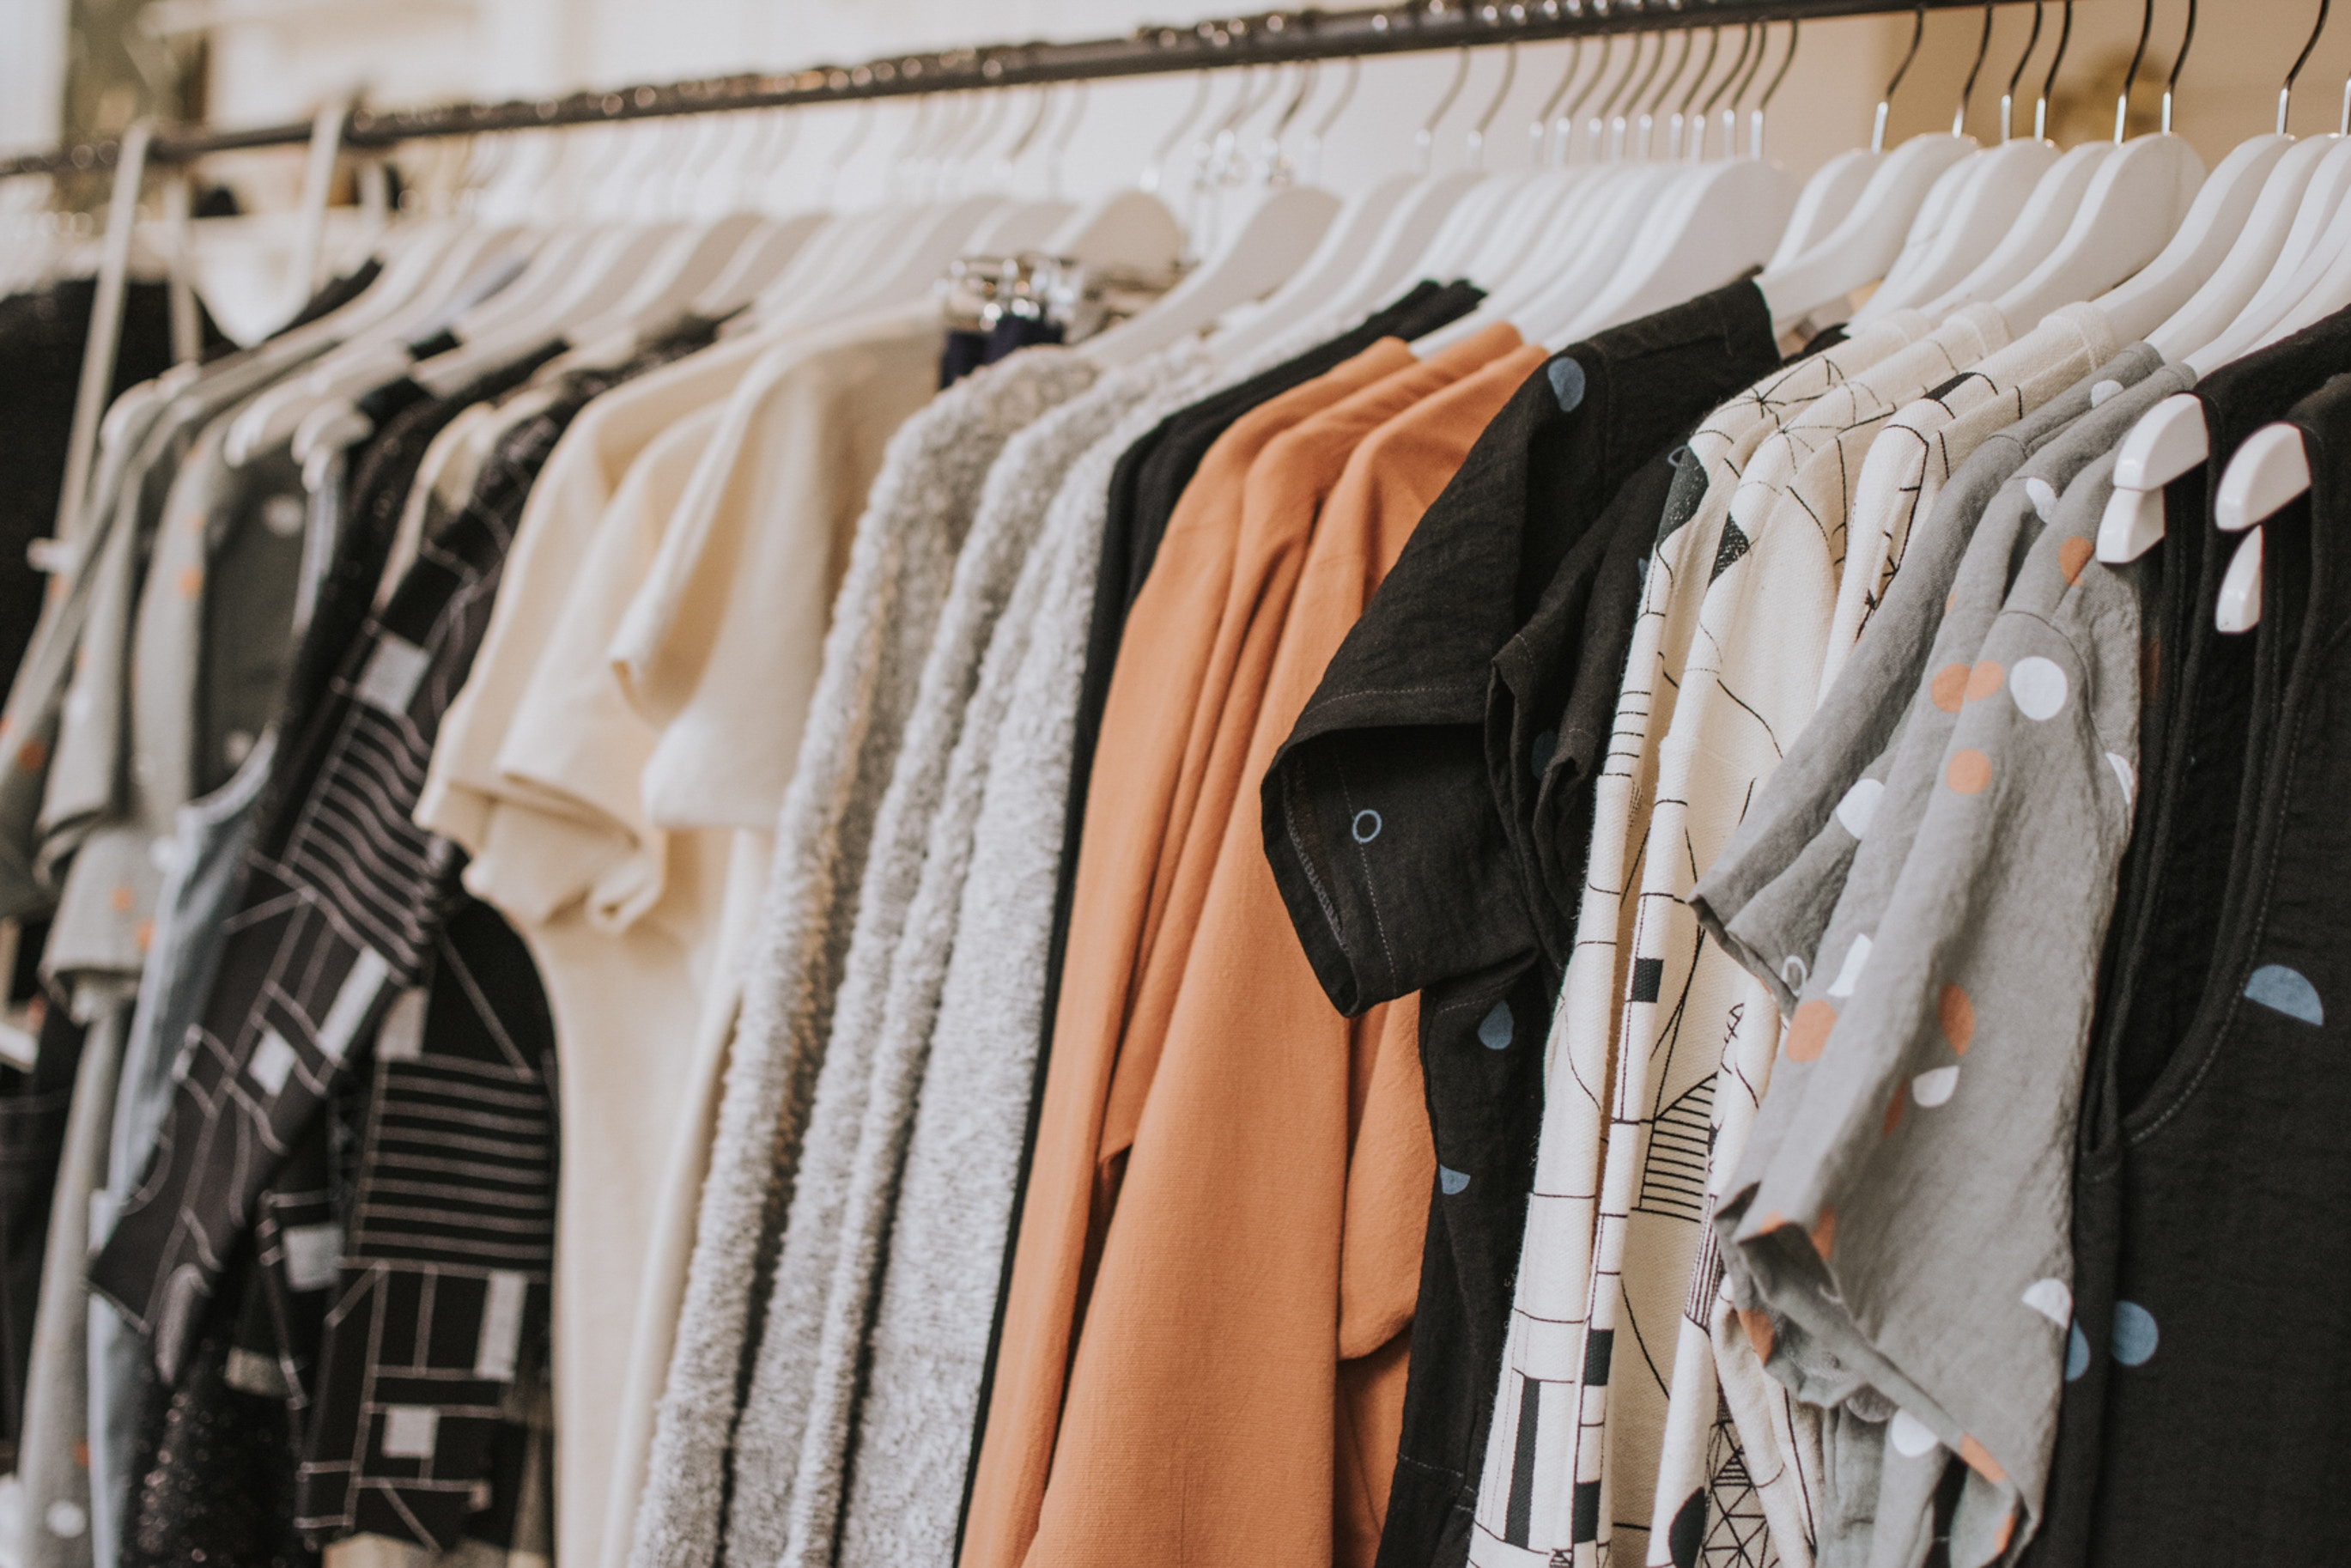 Fair Fashion - Warum so teuer? © Lauren Fleischmann on Unsplash